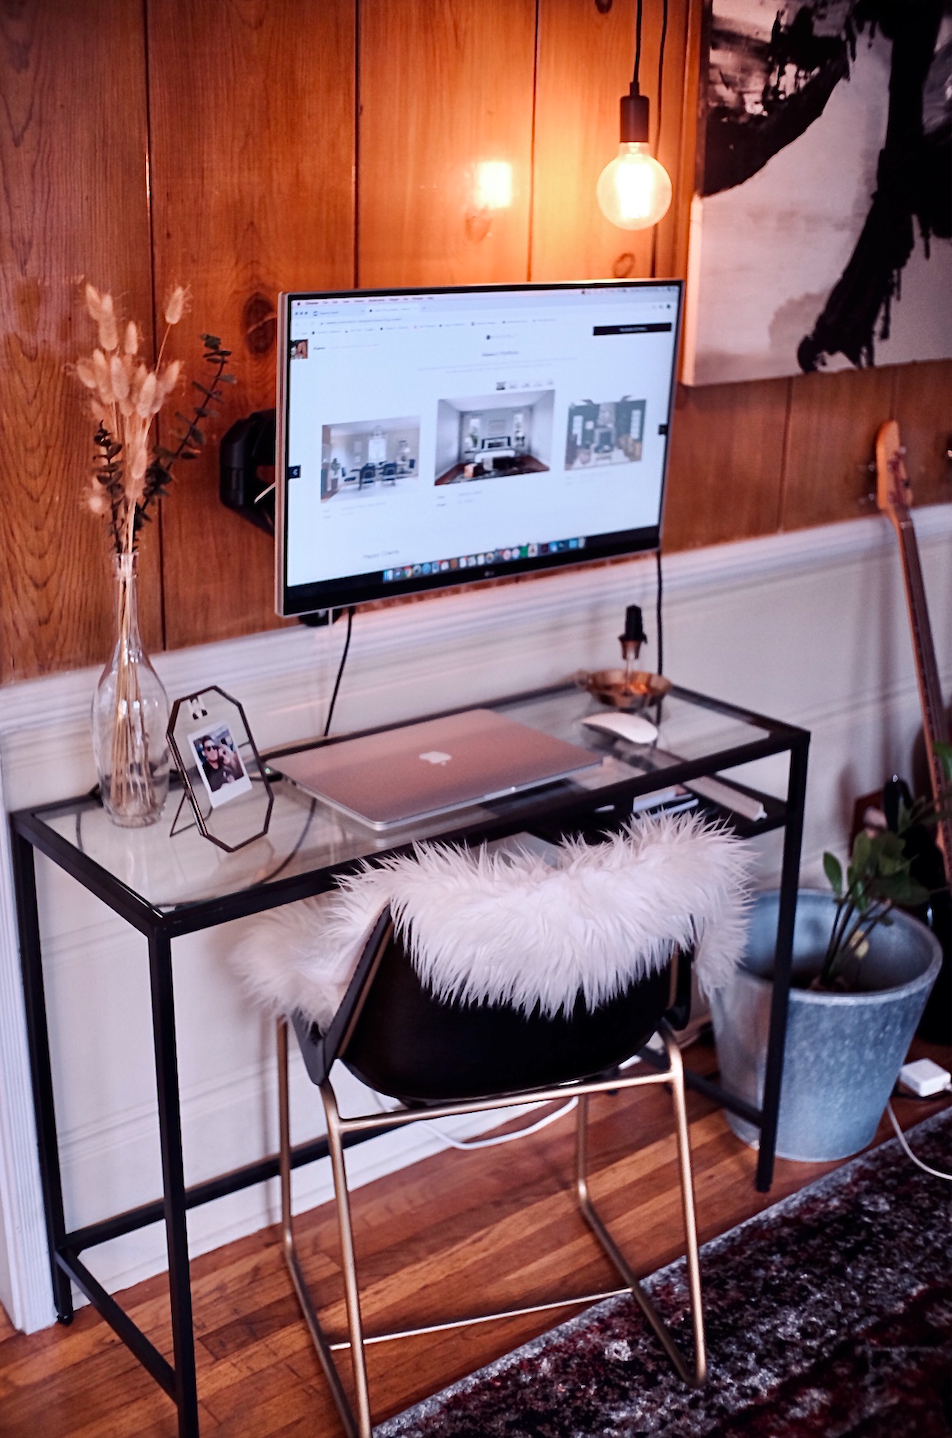 No space? No problem. A console table is just the right width for a laptop and a few accessories. (Photo: Havenly)